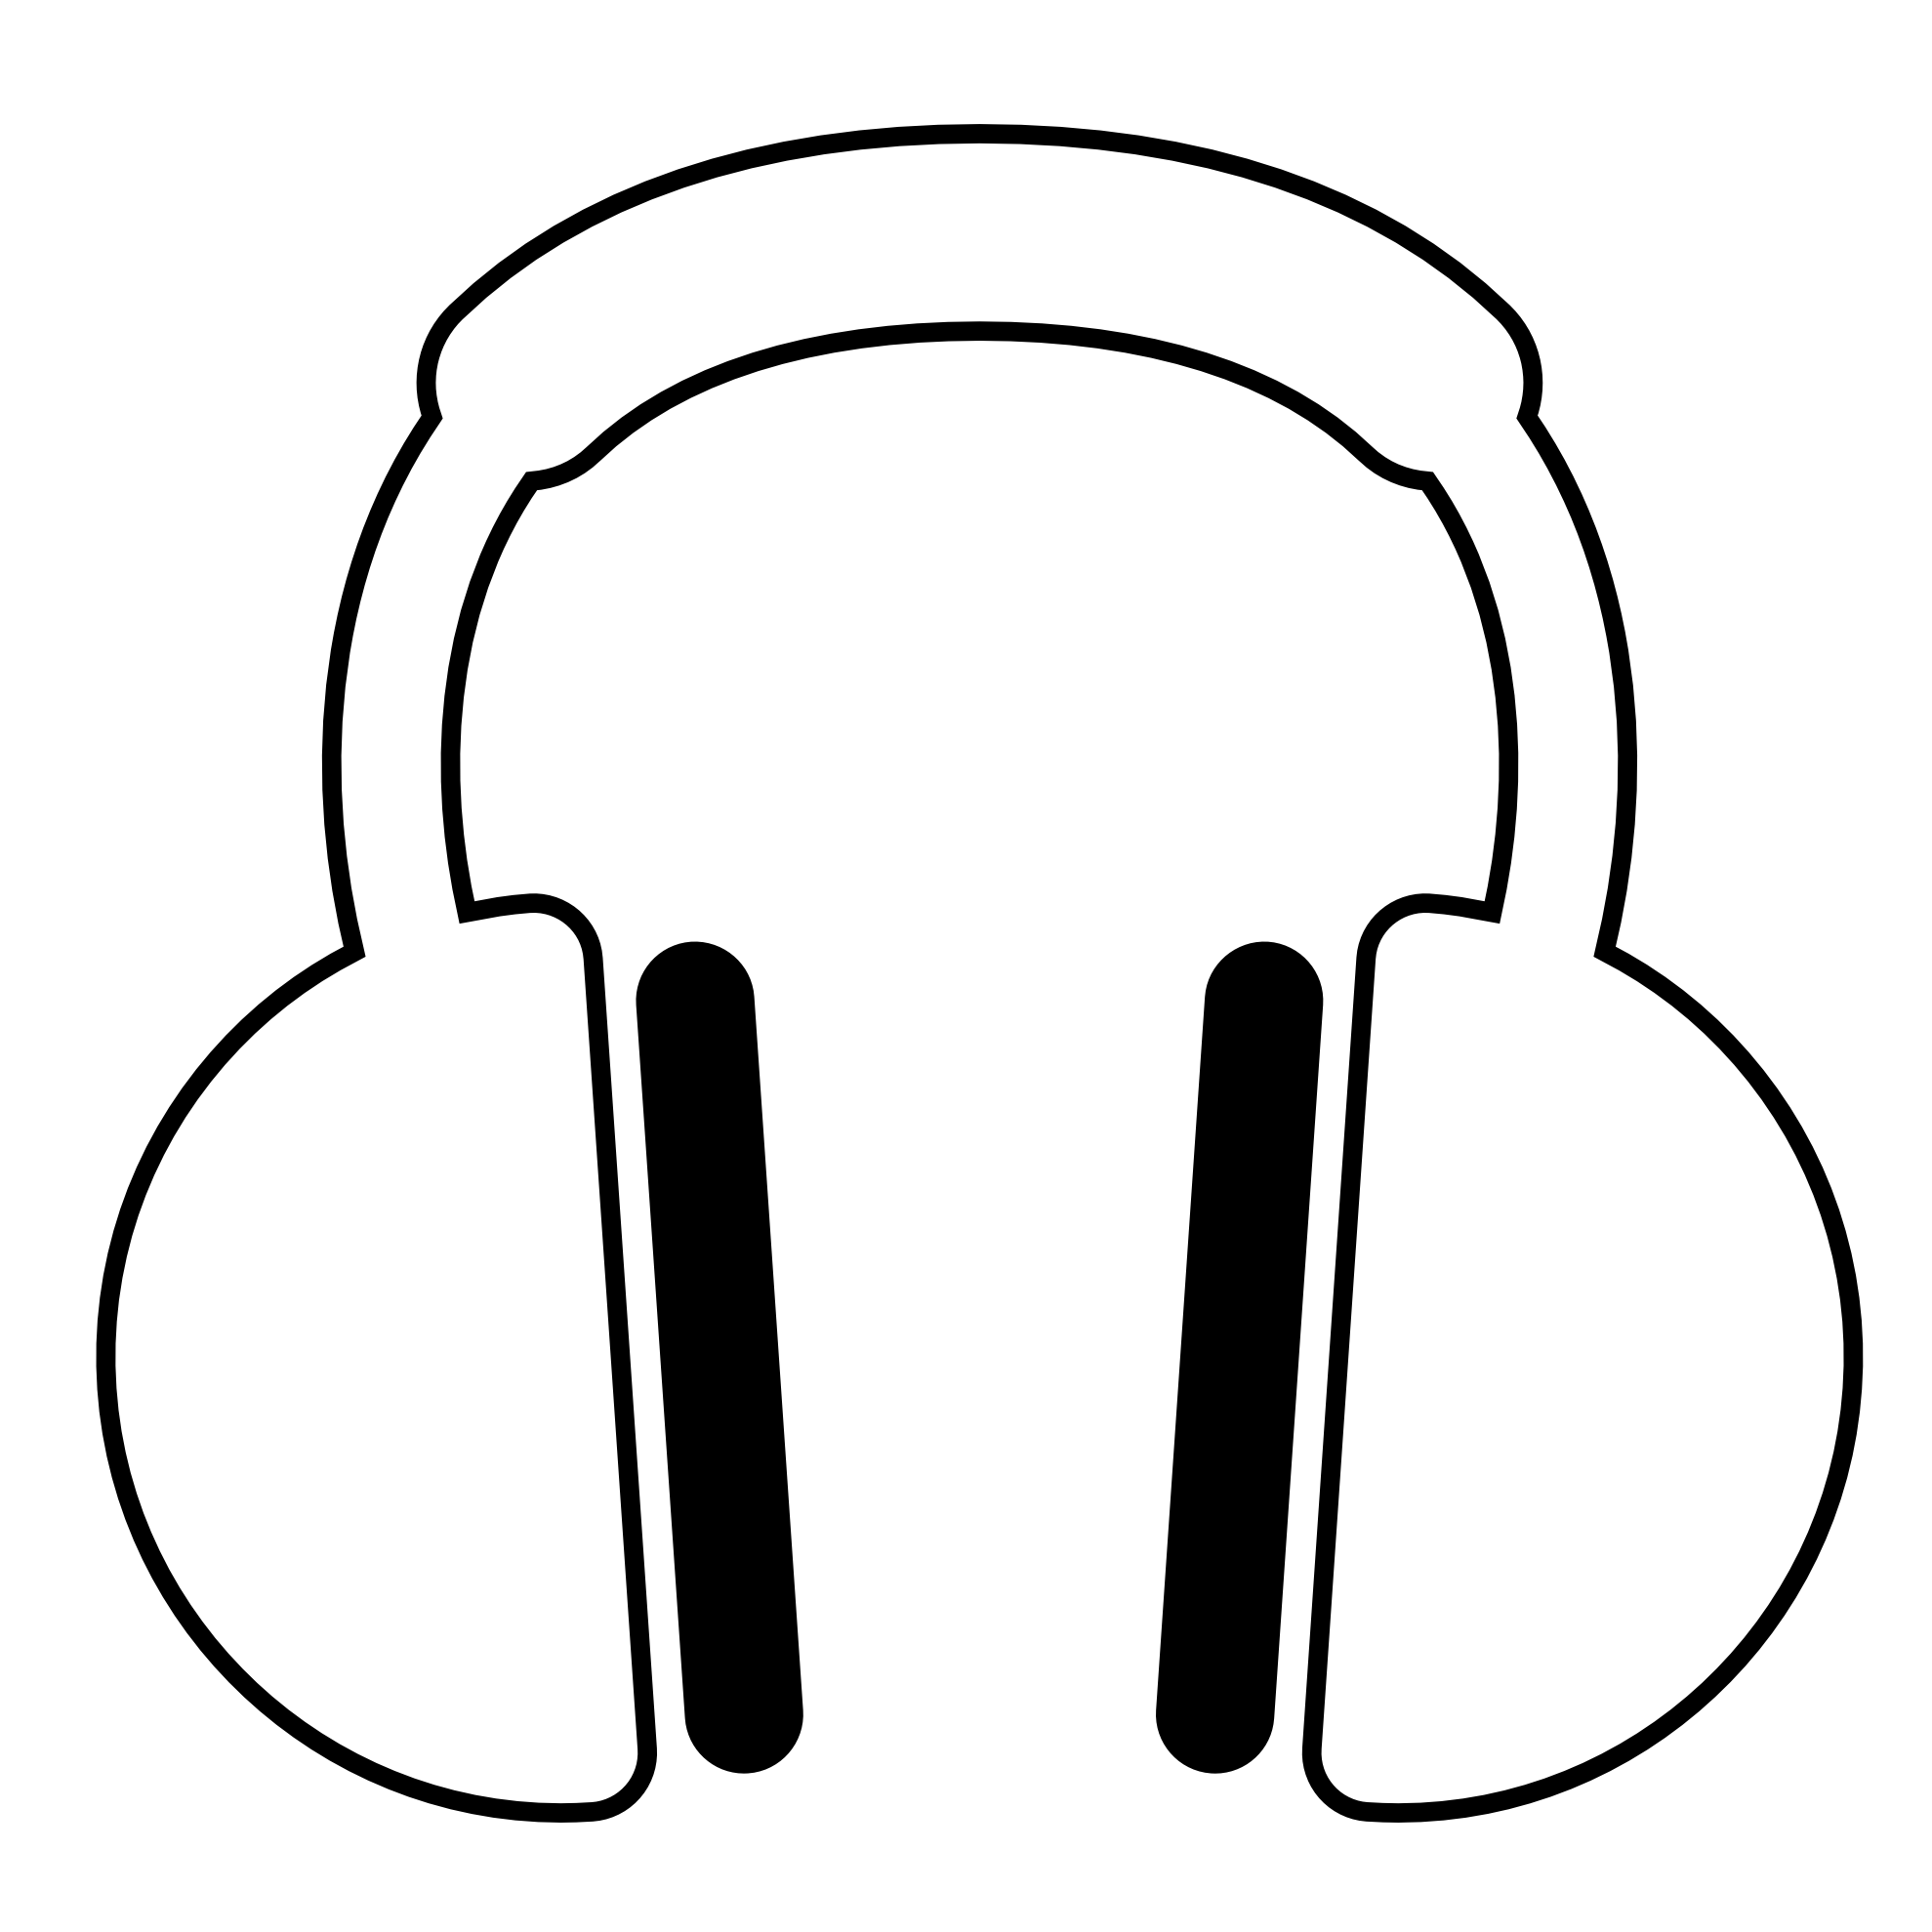 Music  black and white listening to music clipart black and white free 2